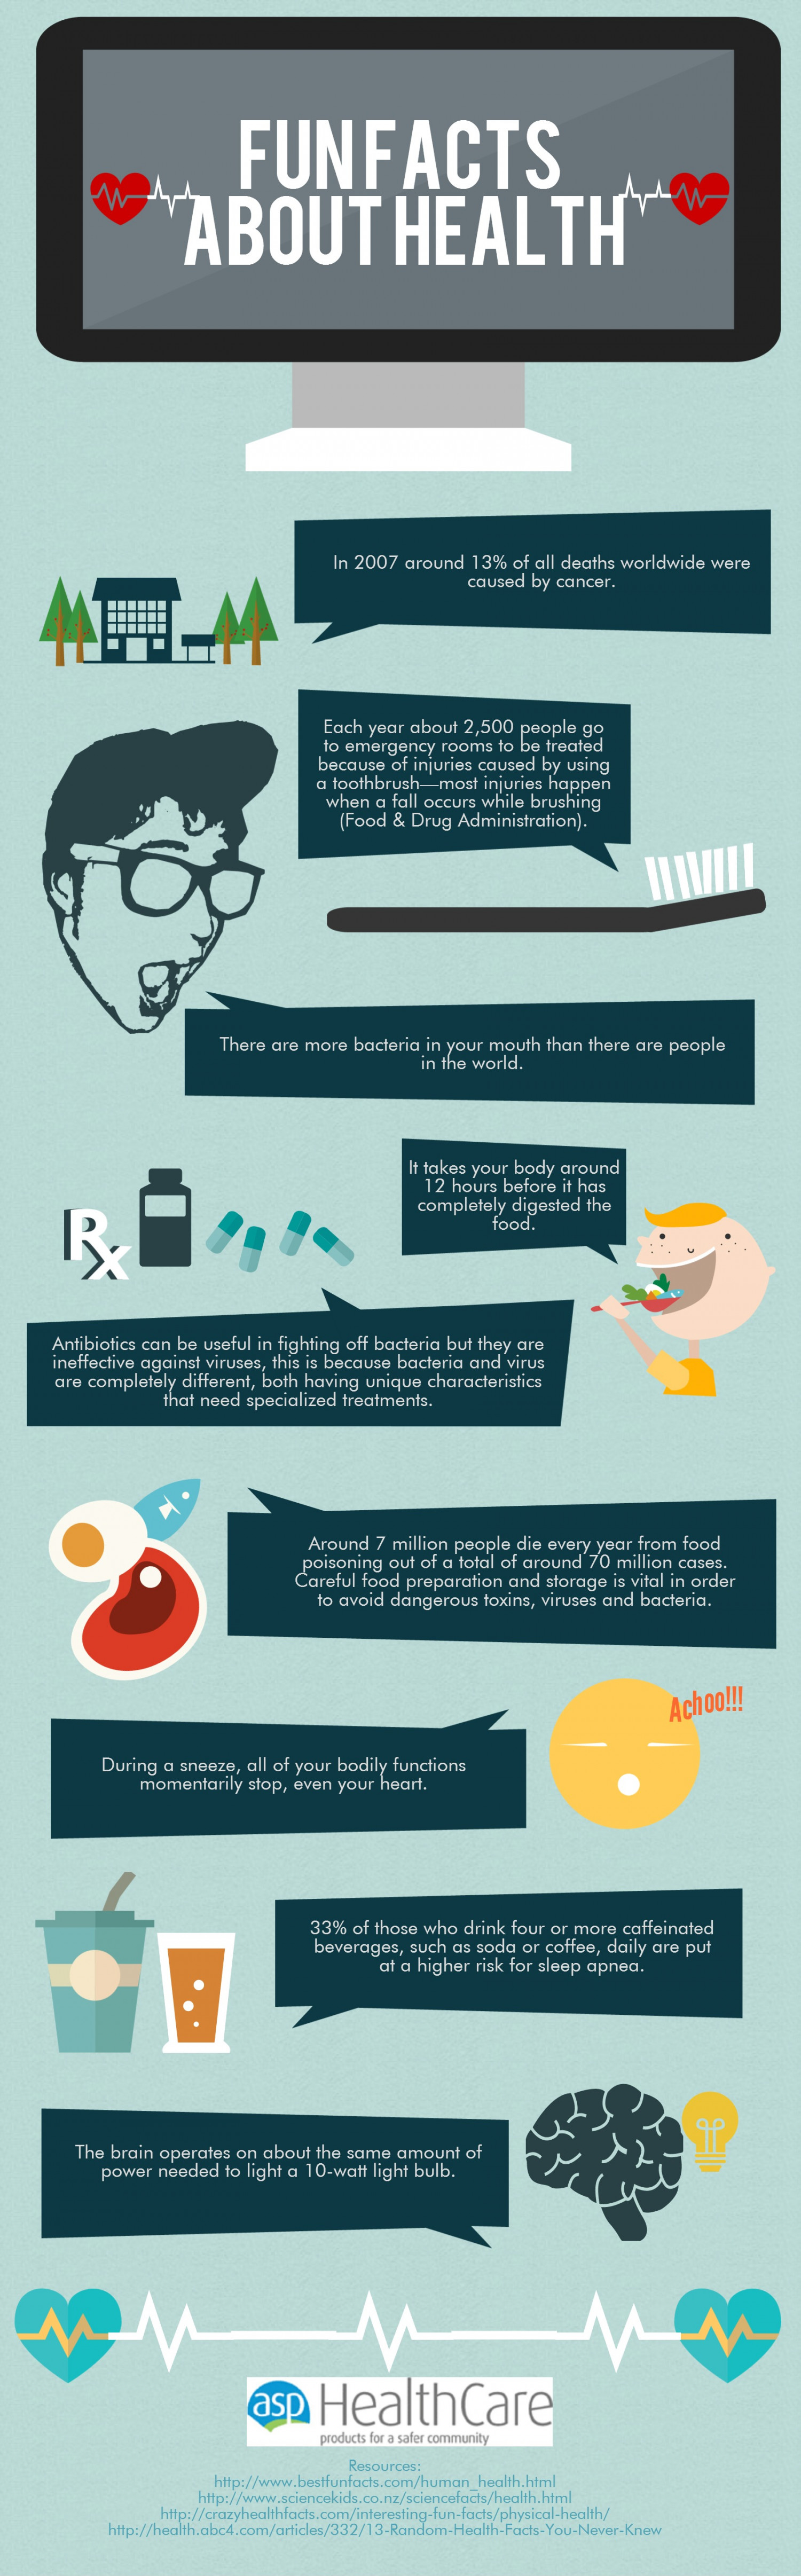 Fun Facts About Health Infographic